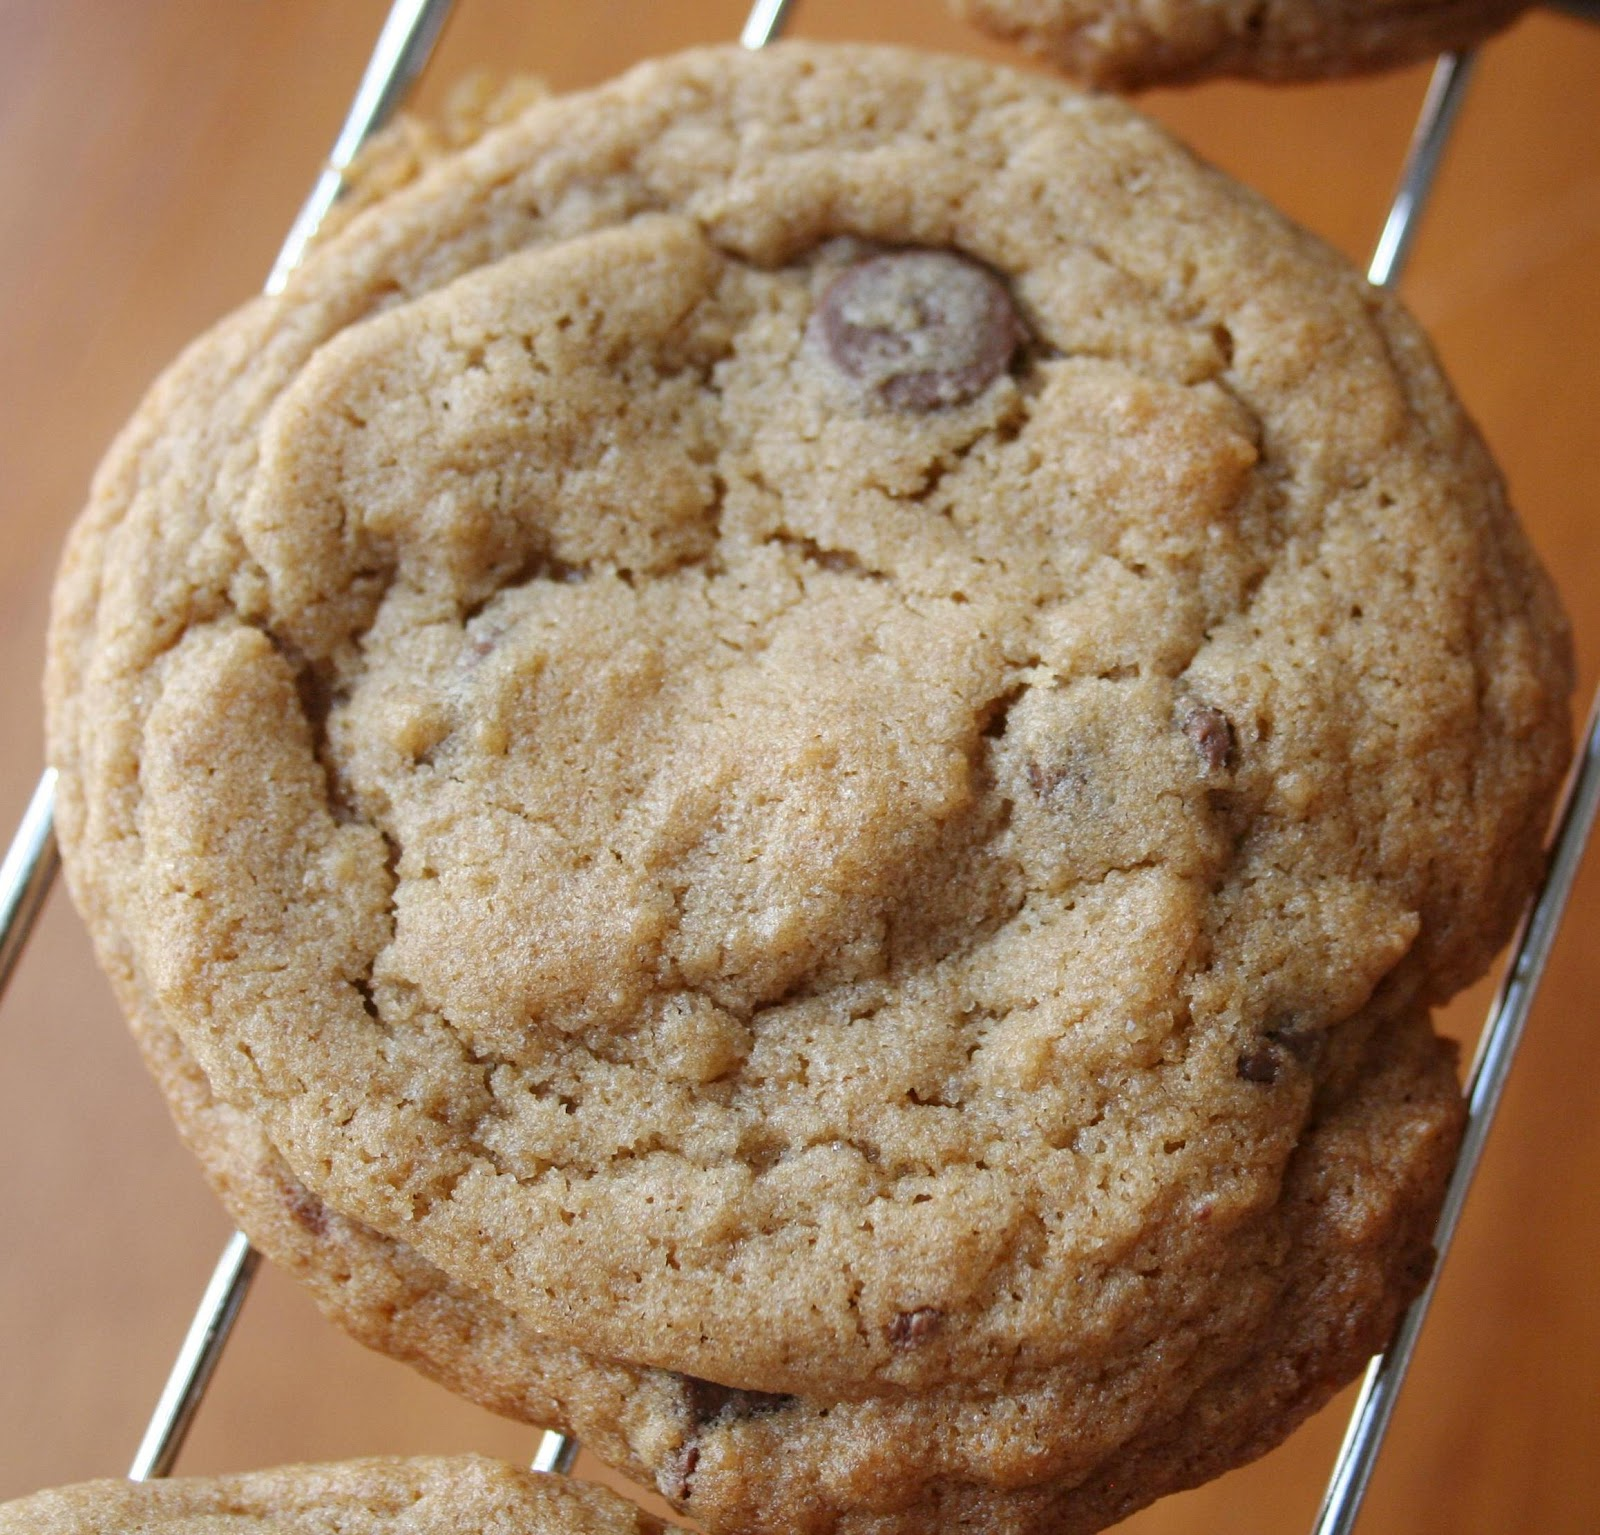 ... the Recipes of My Life: Recipes: Whole Wheat Chocolate Chip Cookies